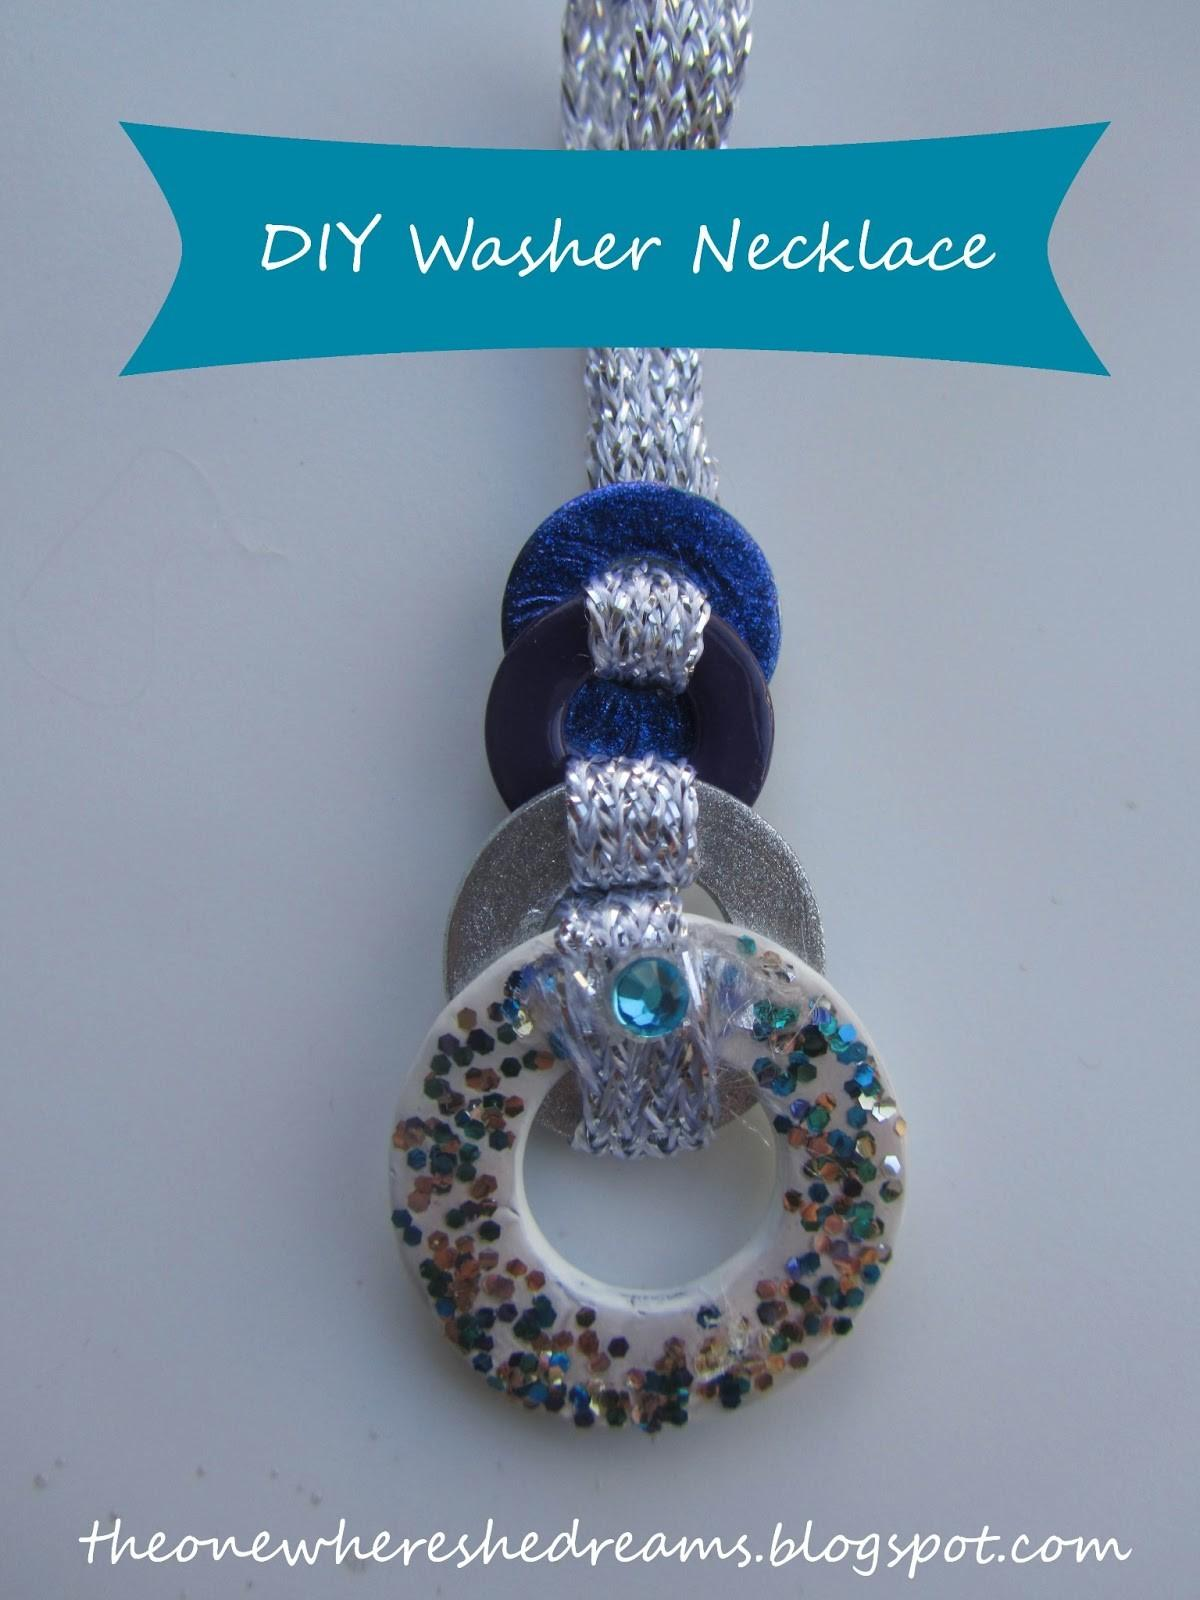 One She Dreams Diy Washer Necklace